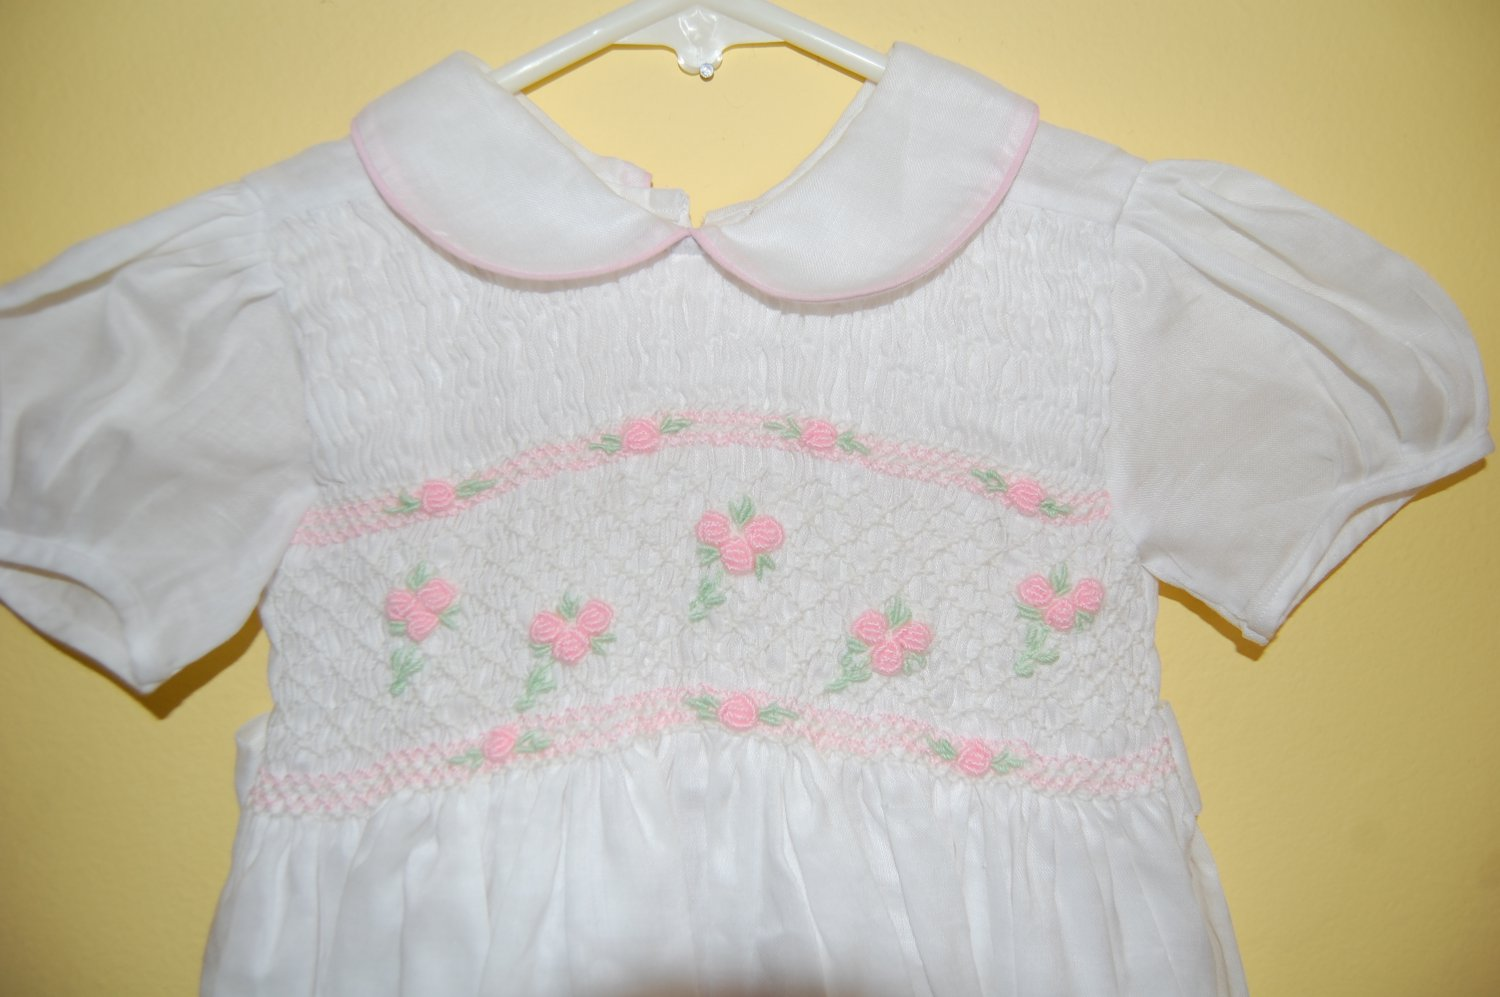 White Linen Hand Smocked with Pink Flowers Dress